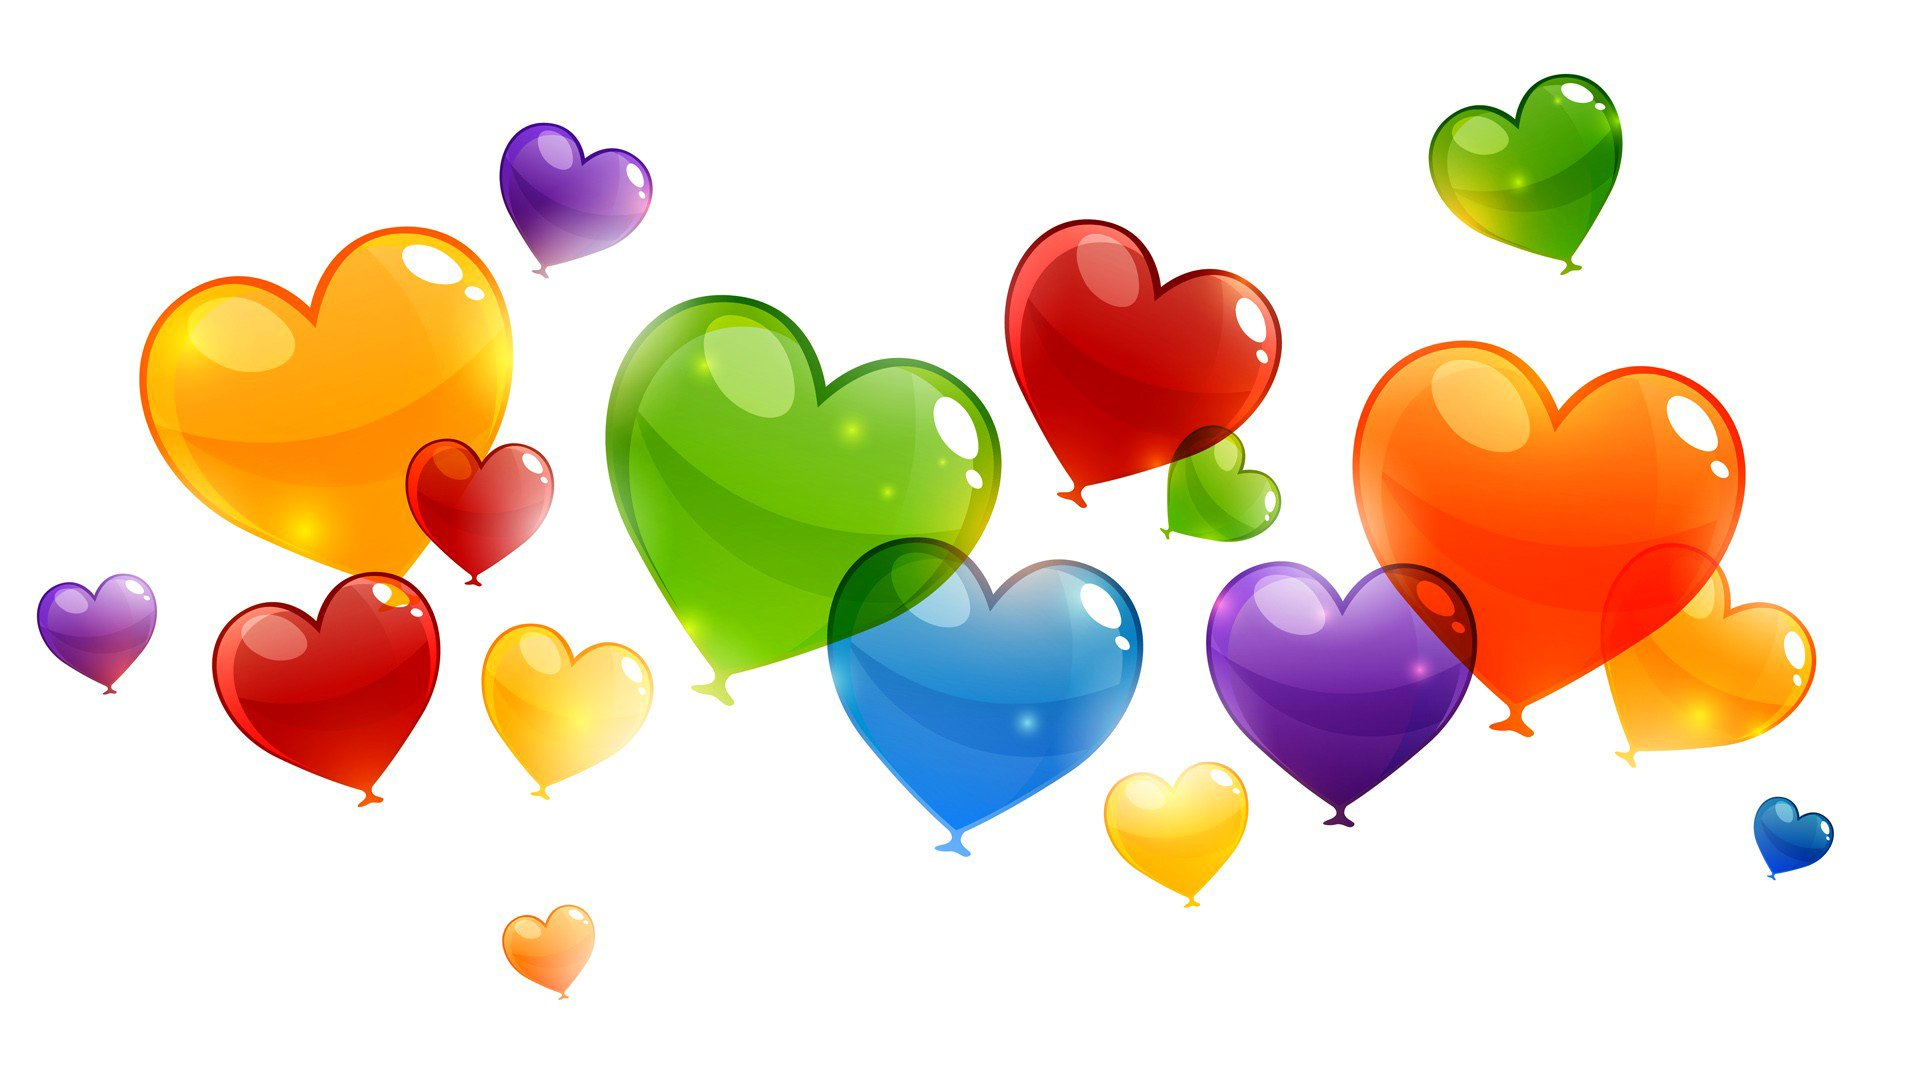 Balloons heart abstraction Valentine St Love heart wallpaper | 1920x1080 | 501977 | WallpaperUP